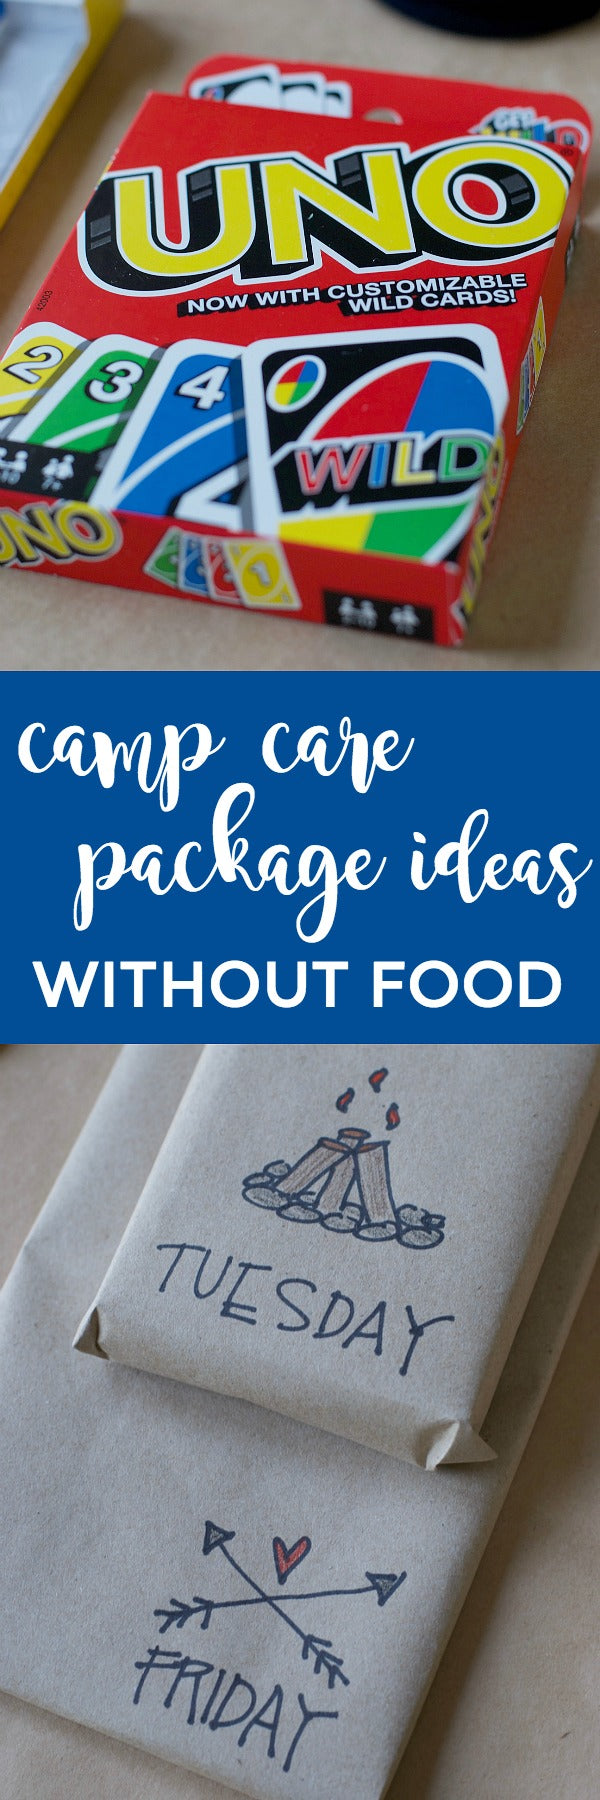 camp care package ideas without food – satsuma designs